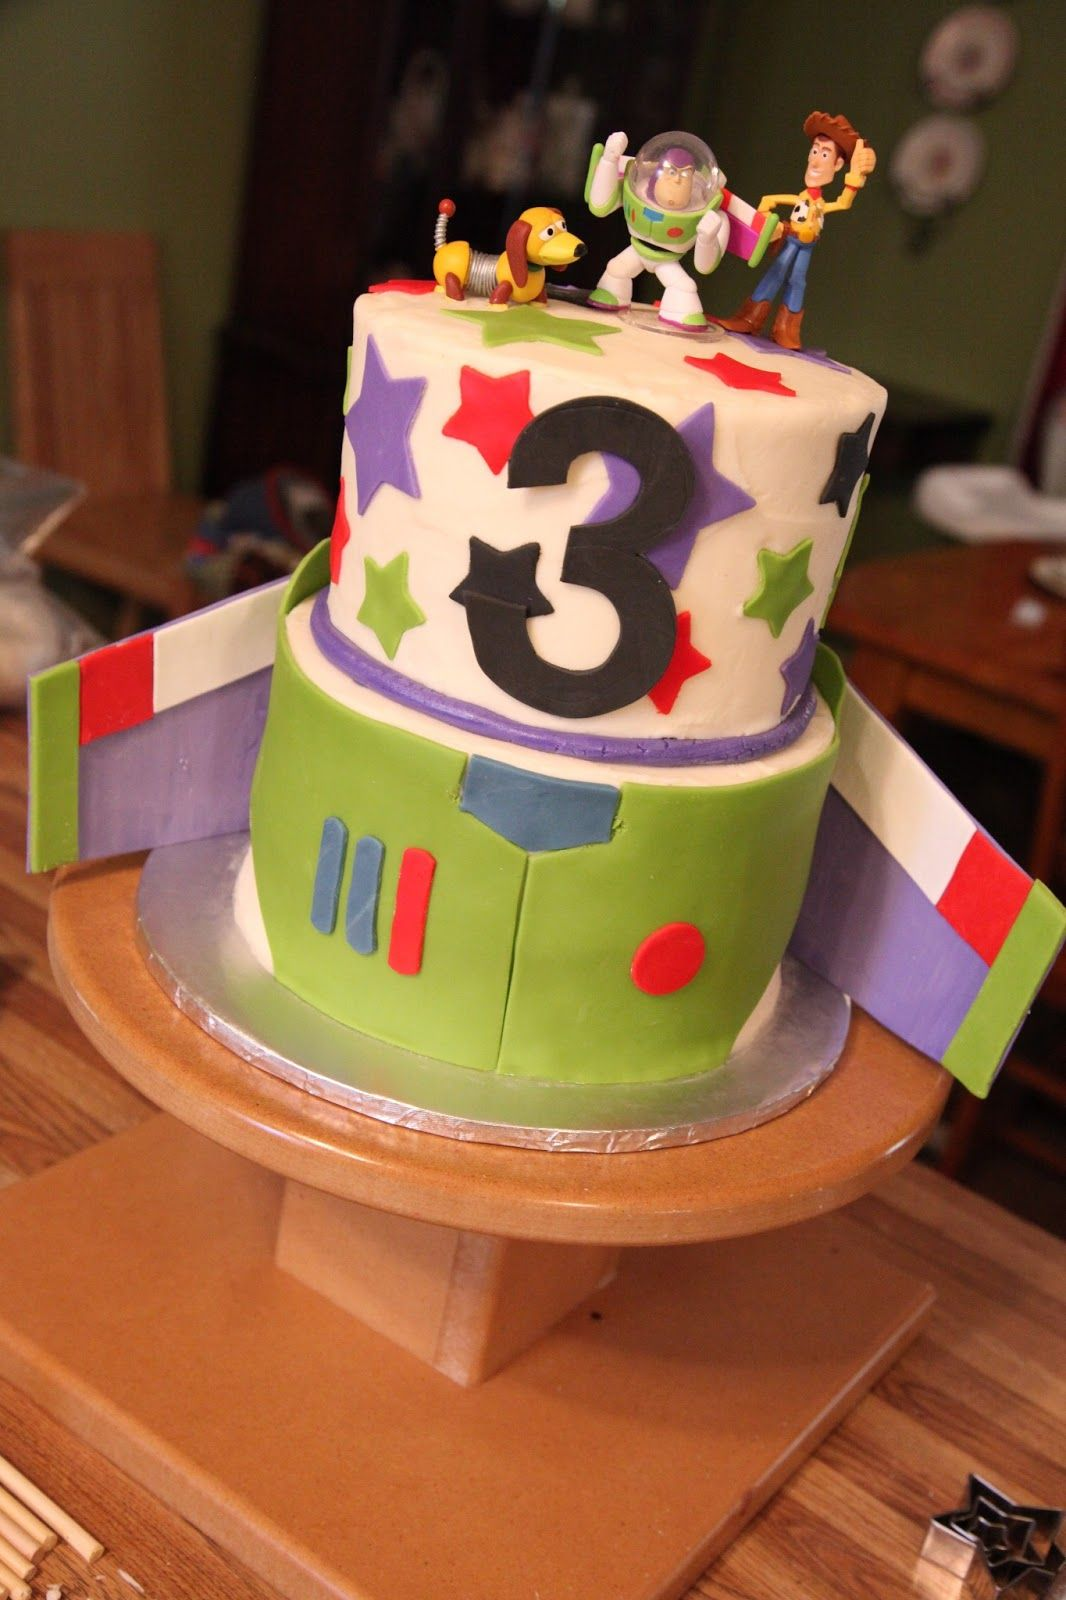 Toy Story Cake For A 3 Year Old Little Boy Chocolate With Vanilla Buttercream Fondant Gumpaste Decorations And Toppers